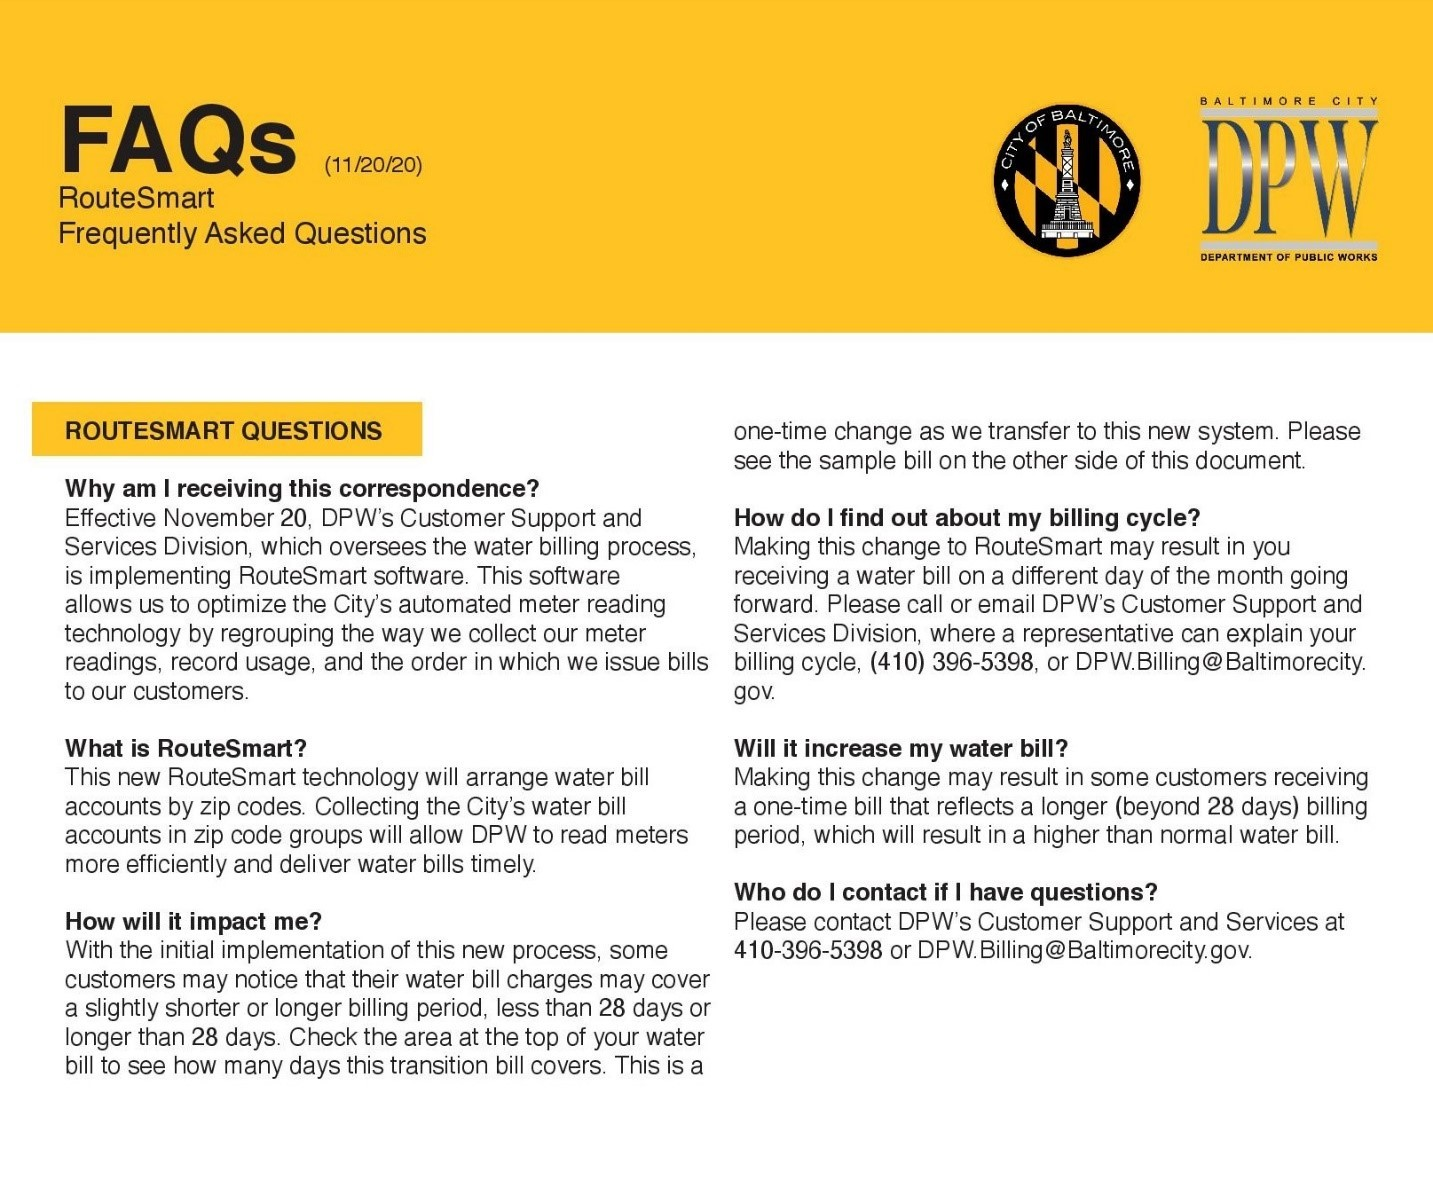 FAQ Document